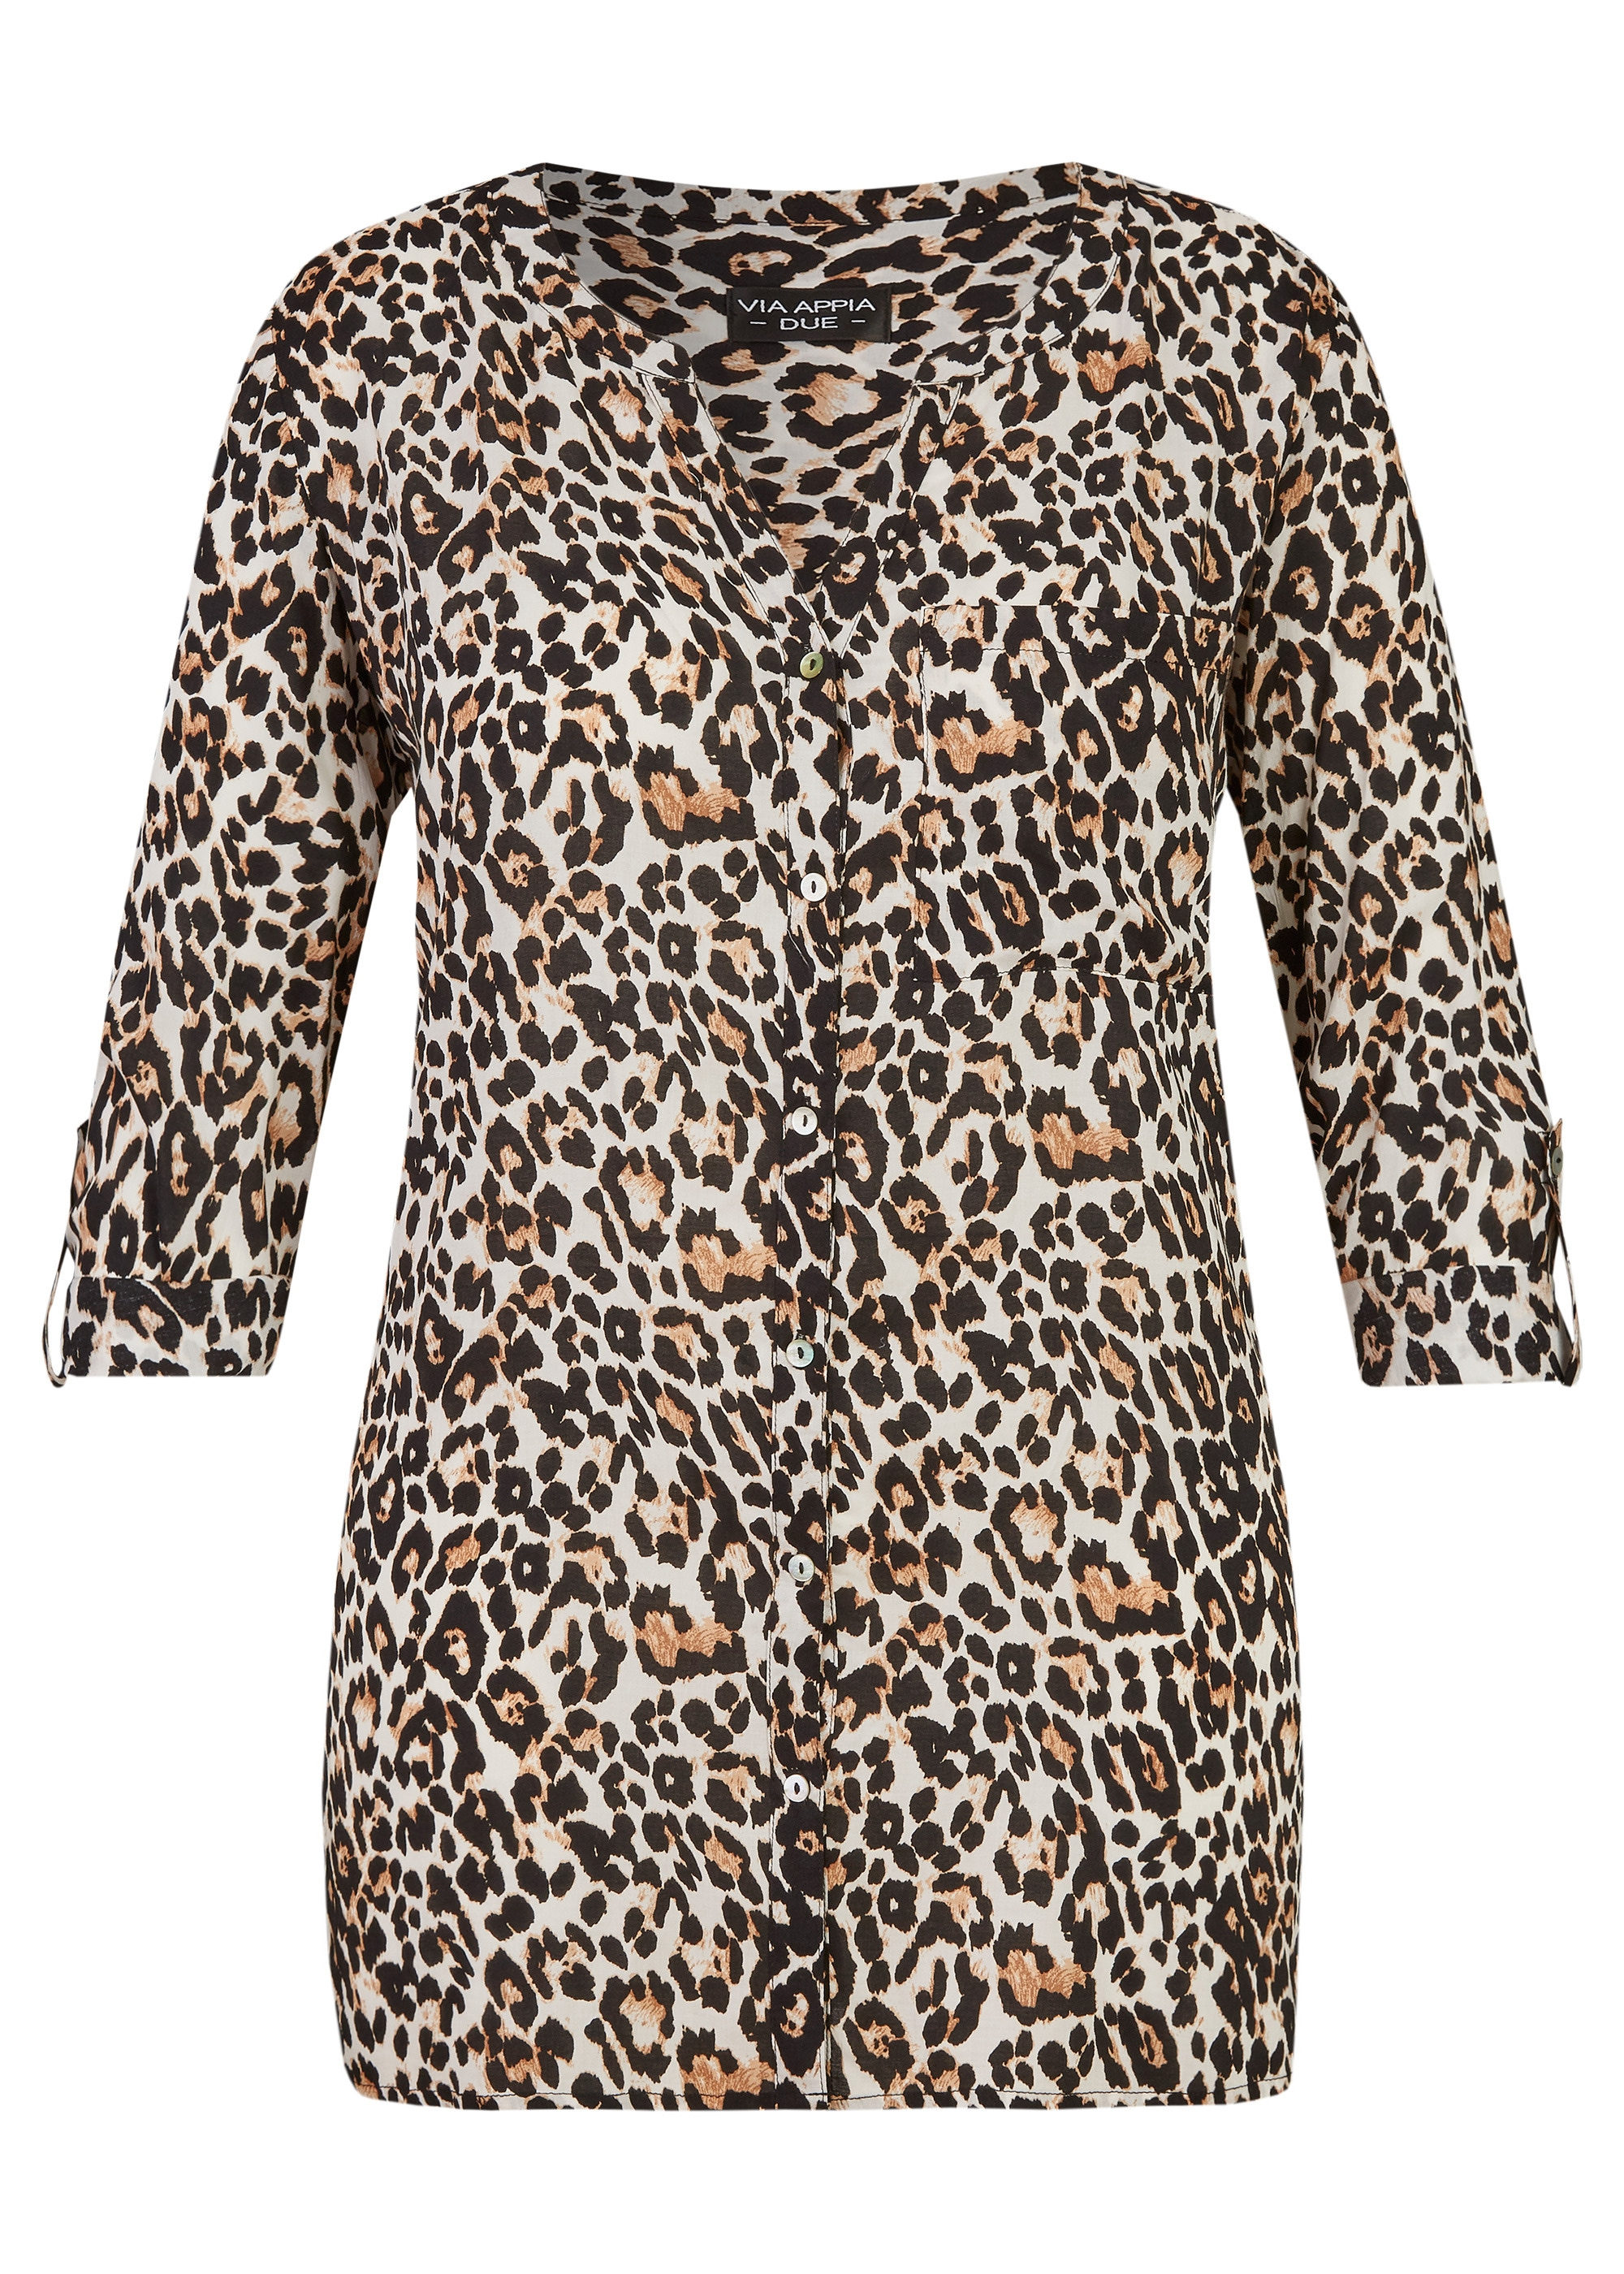 VIA APPIA DUE Stylische Bluse mit Animal-Print